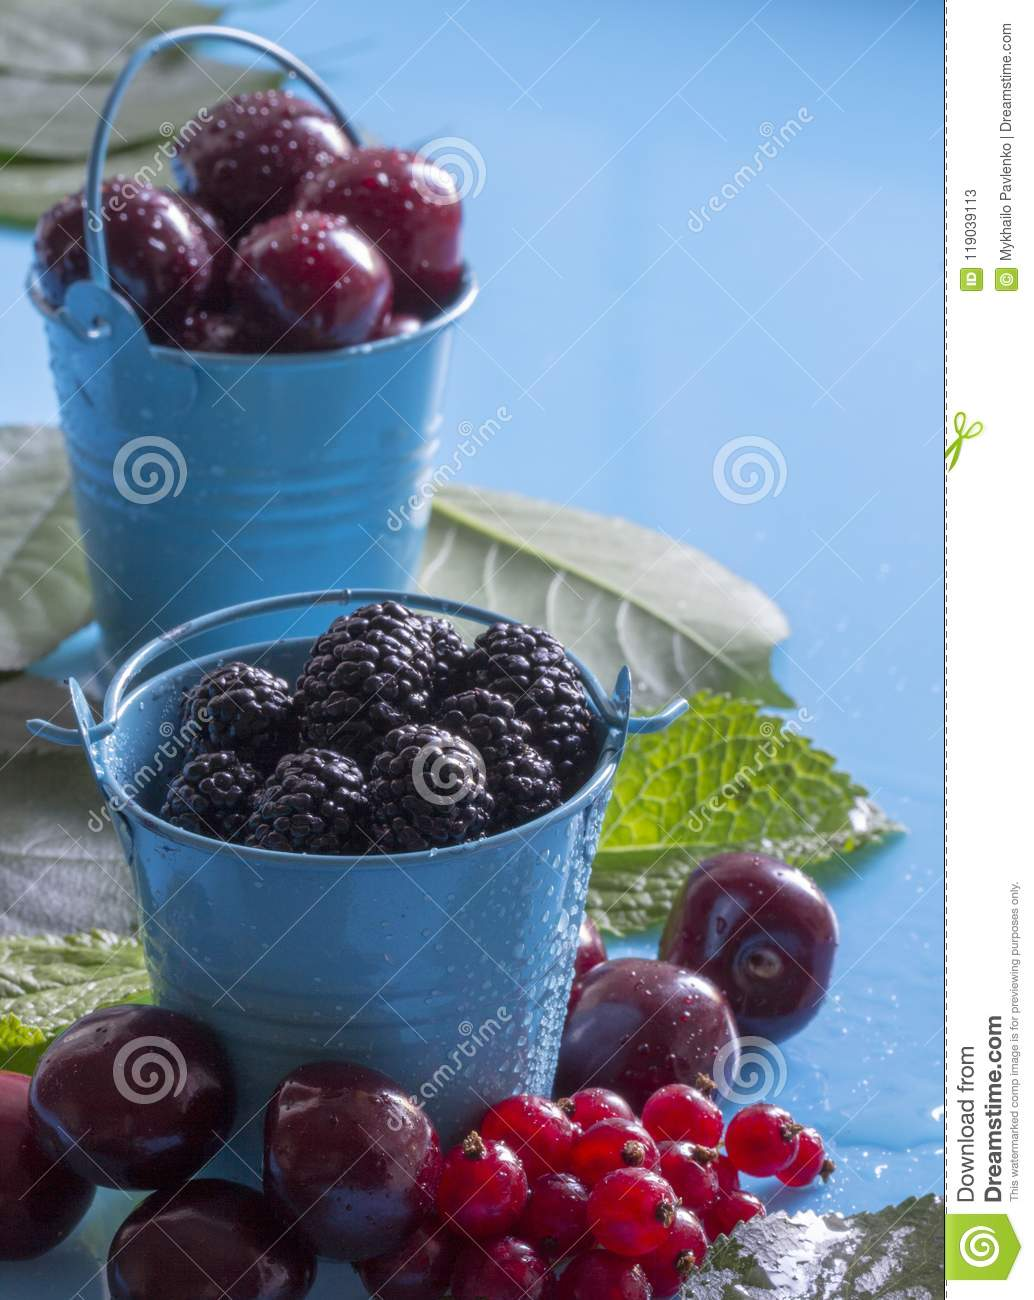 efad375c4d69 A Mulberry And Other Berries In A Blue Bucket